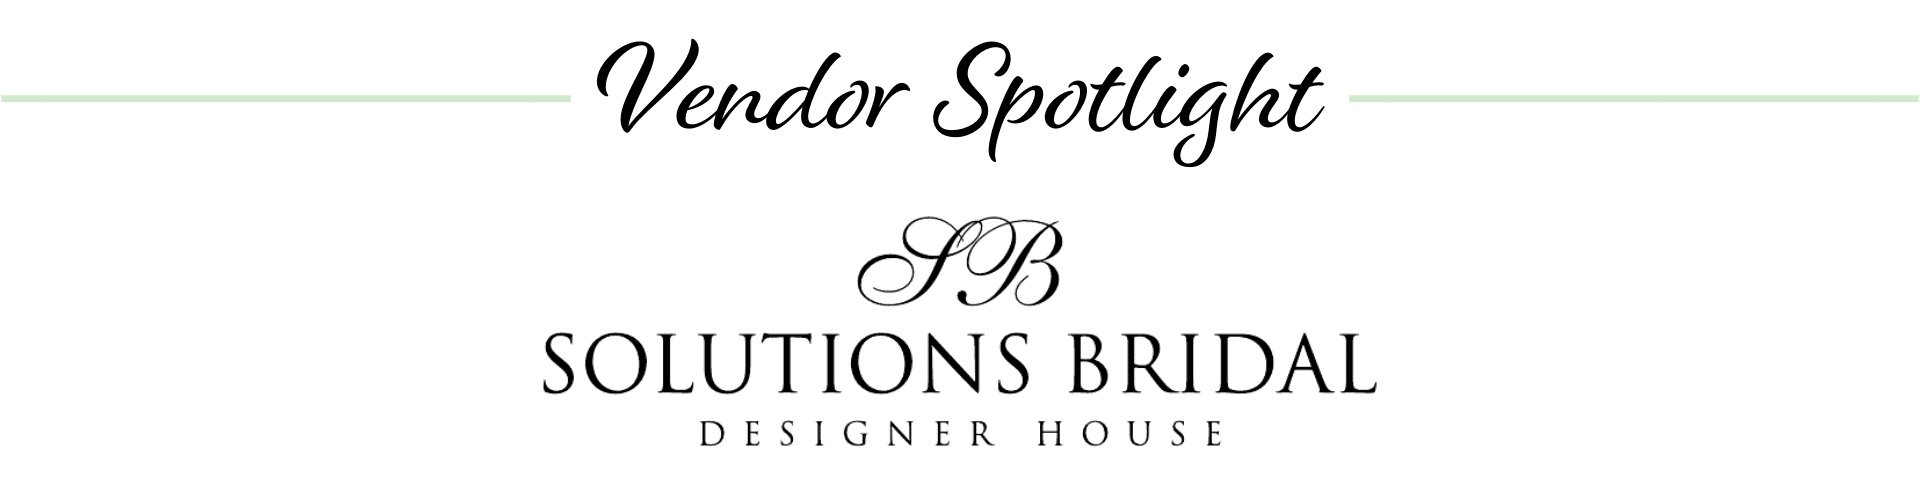 Solutions Bridal logo